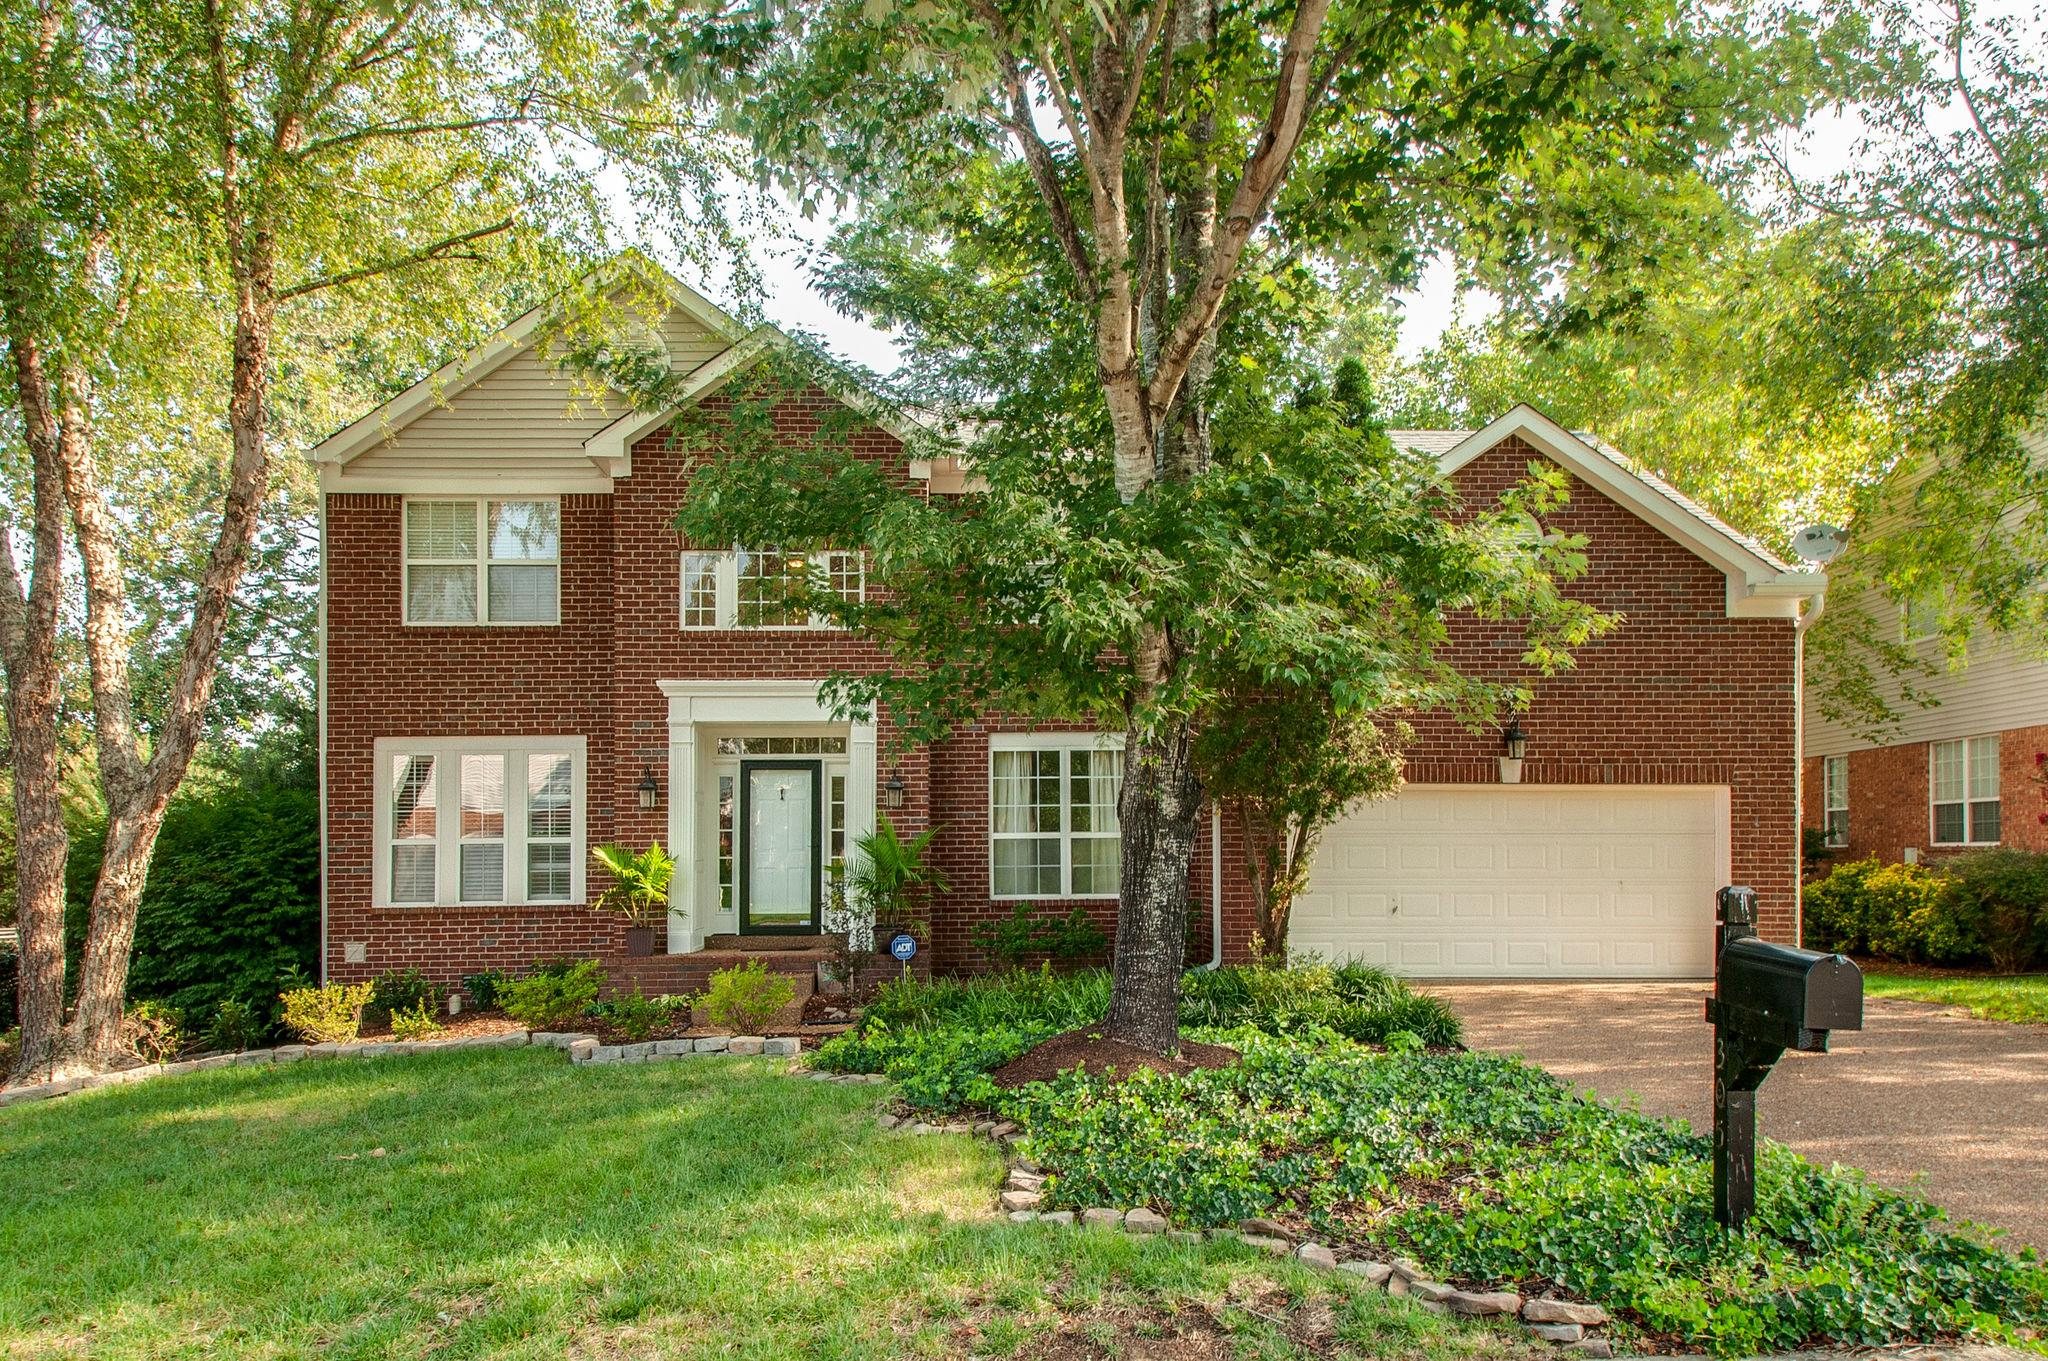 305 East Griffin Ct, Bellevue in Davidson County County, TN 37221 Home for Sale